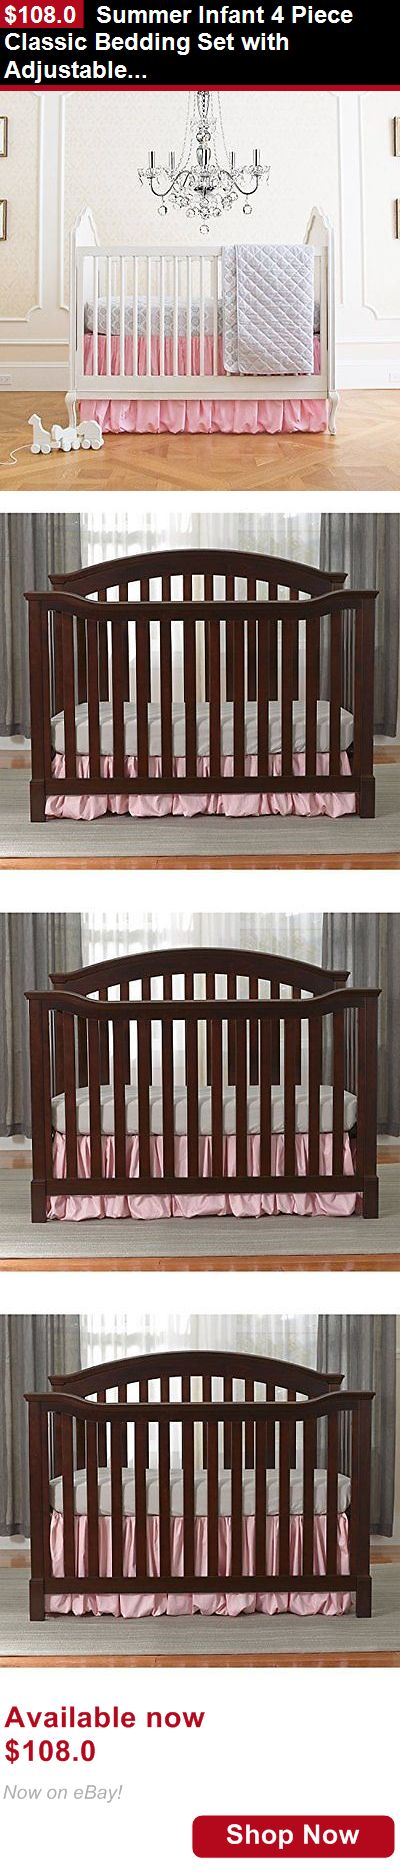 Other Nursery Bedding: Summer Infant 4 Piece Classic Bedding Set With Adjustable... BUY IT NOW ONLY: $108.0